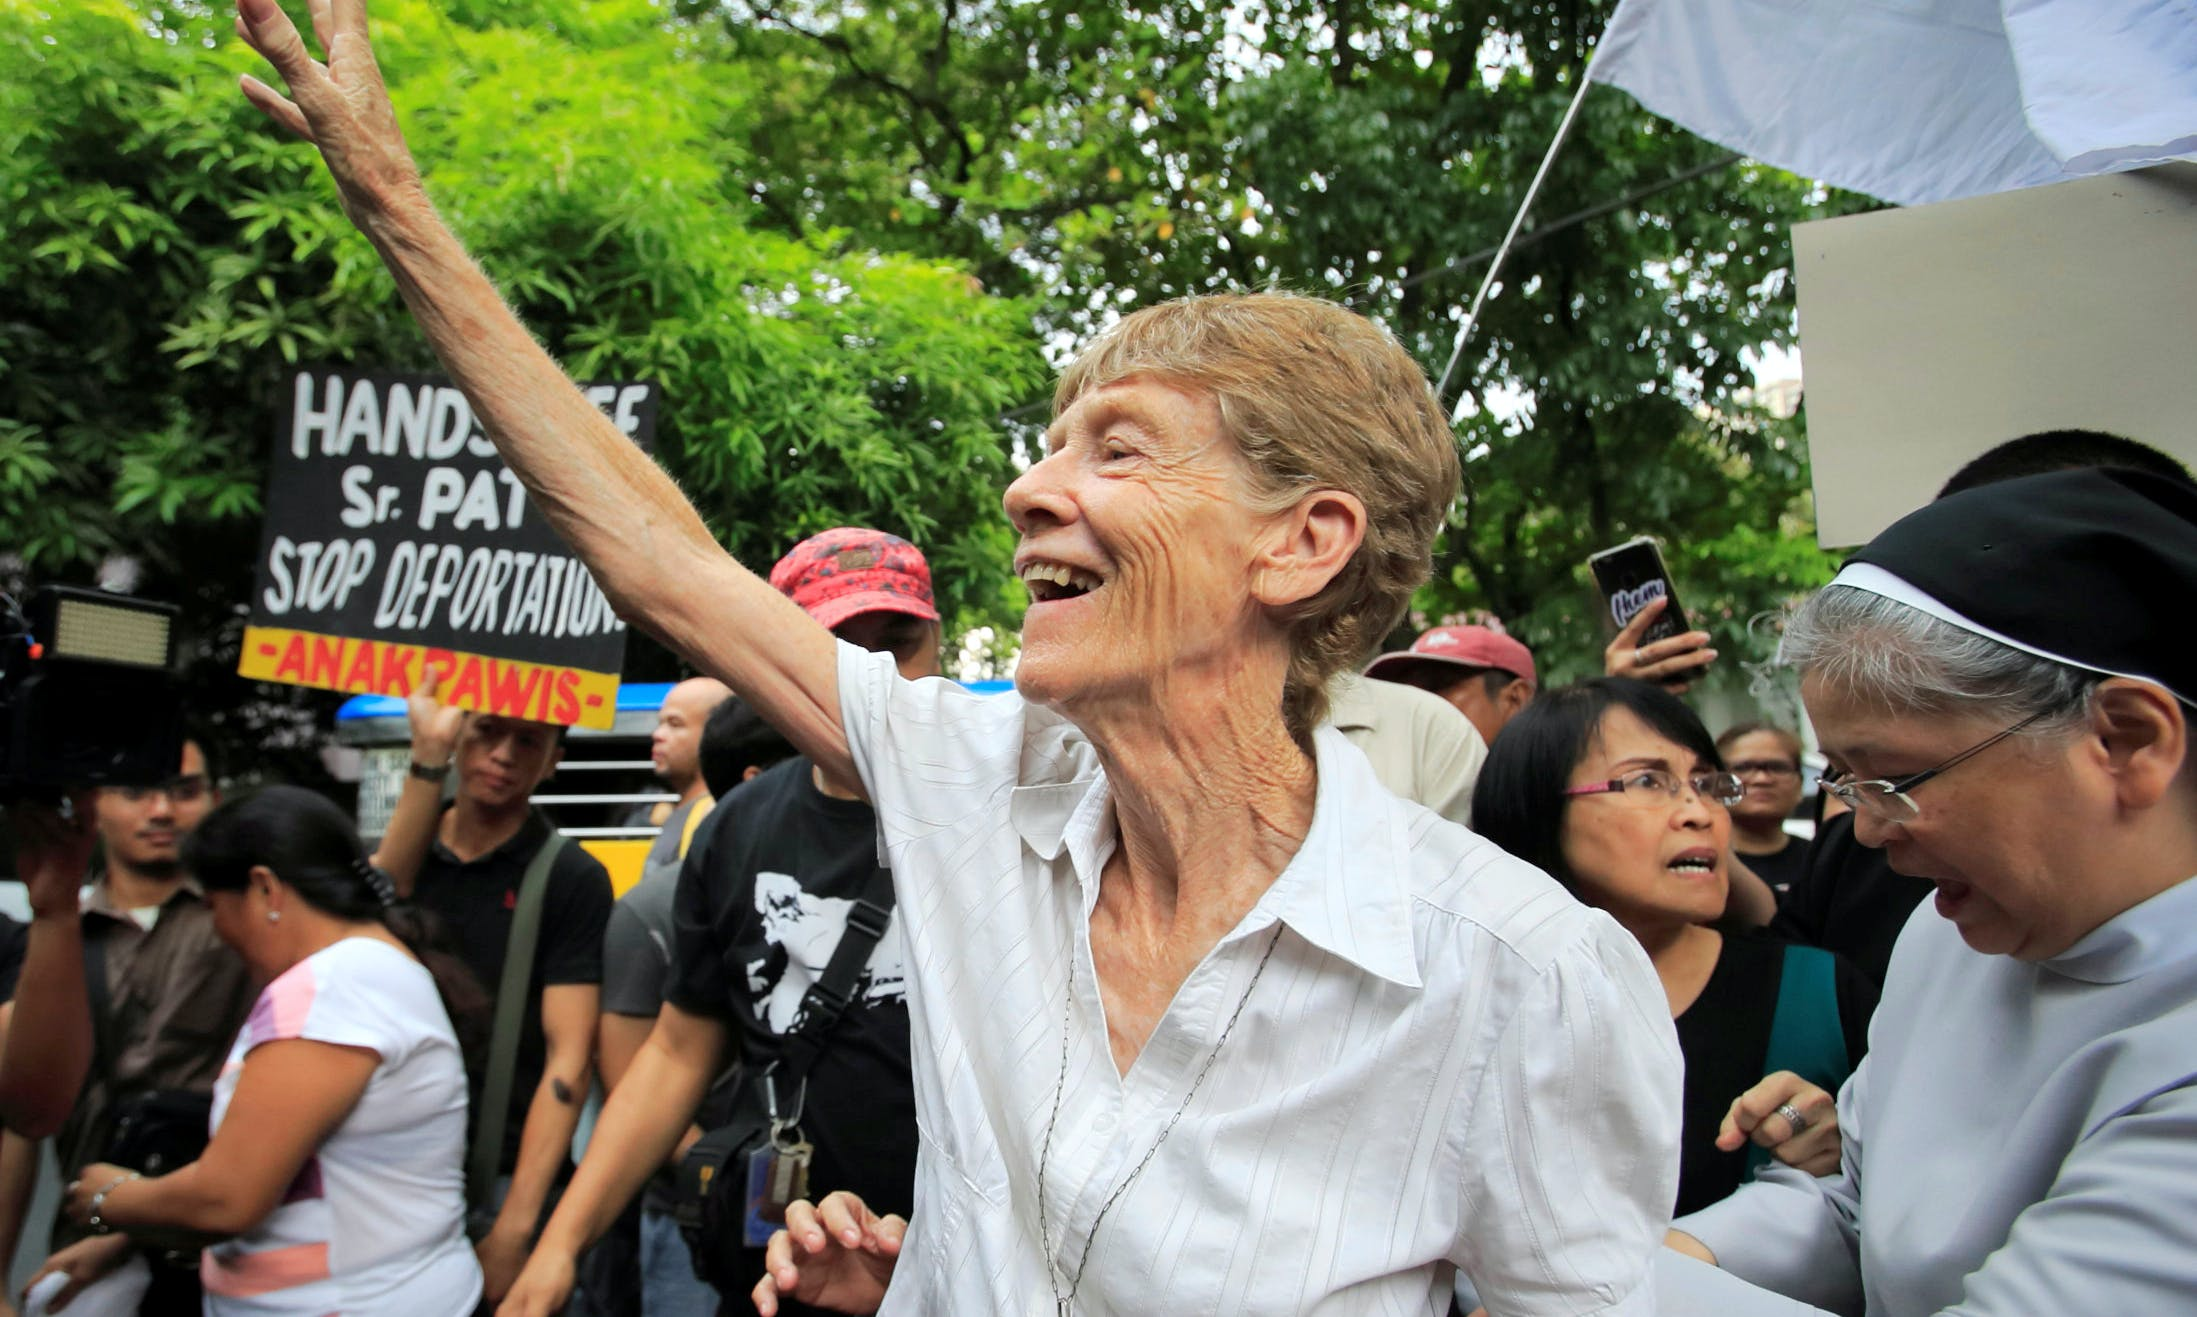 A Gospel for the Barrios: The Philippines' Unshakable Sister Patricia Fox